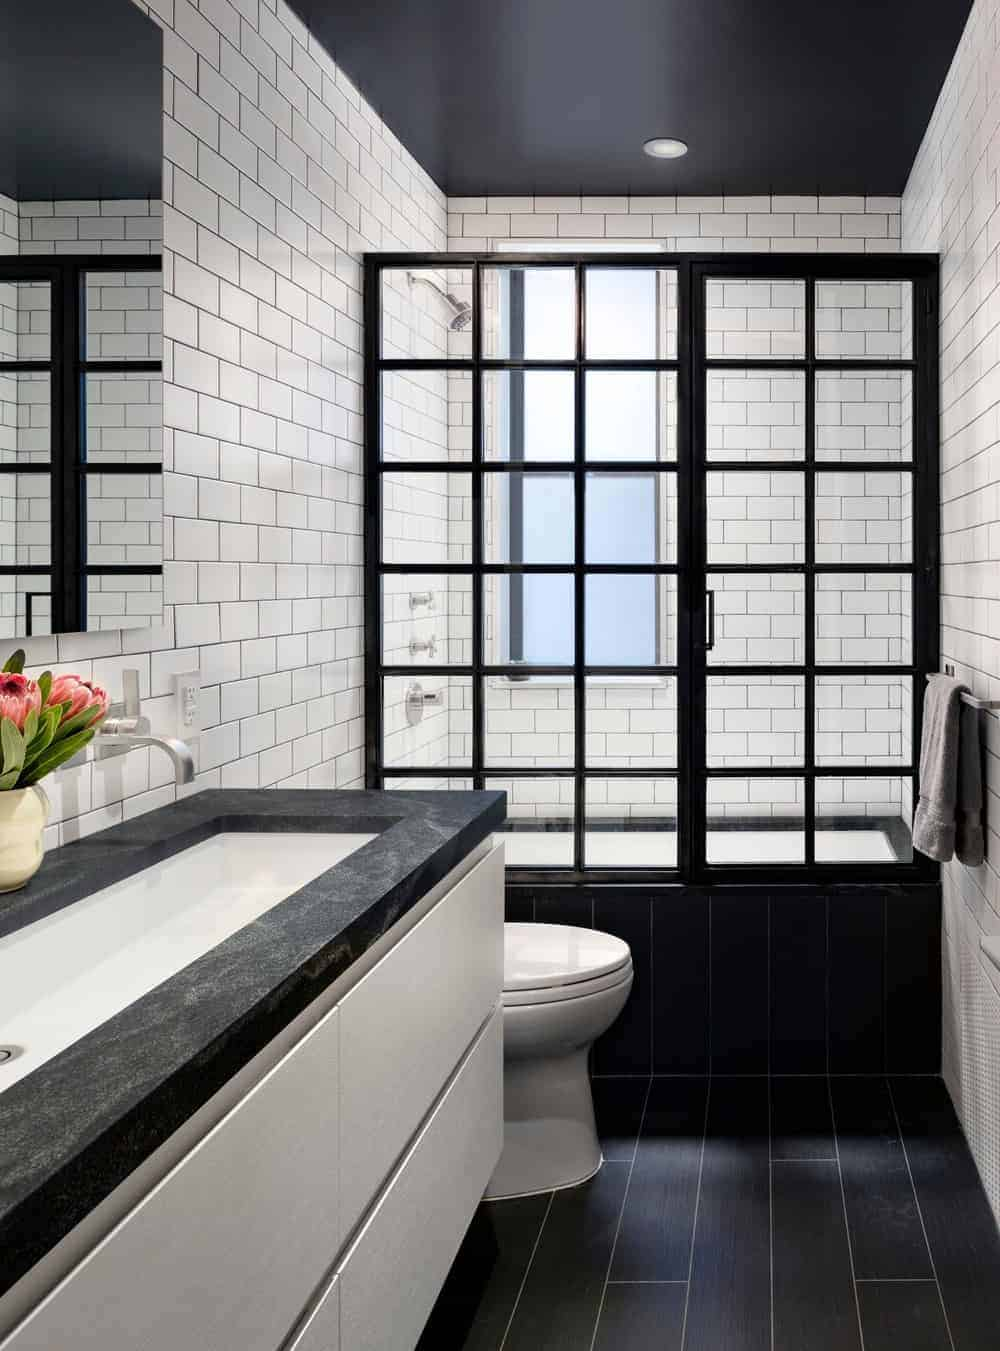 Industrial-style master bathroom with a toilet and a walk-in shower enclosed in black aluminum framed door. It includes a floating sink vanity that matches the hardwood flooring and white subway tile scheme.